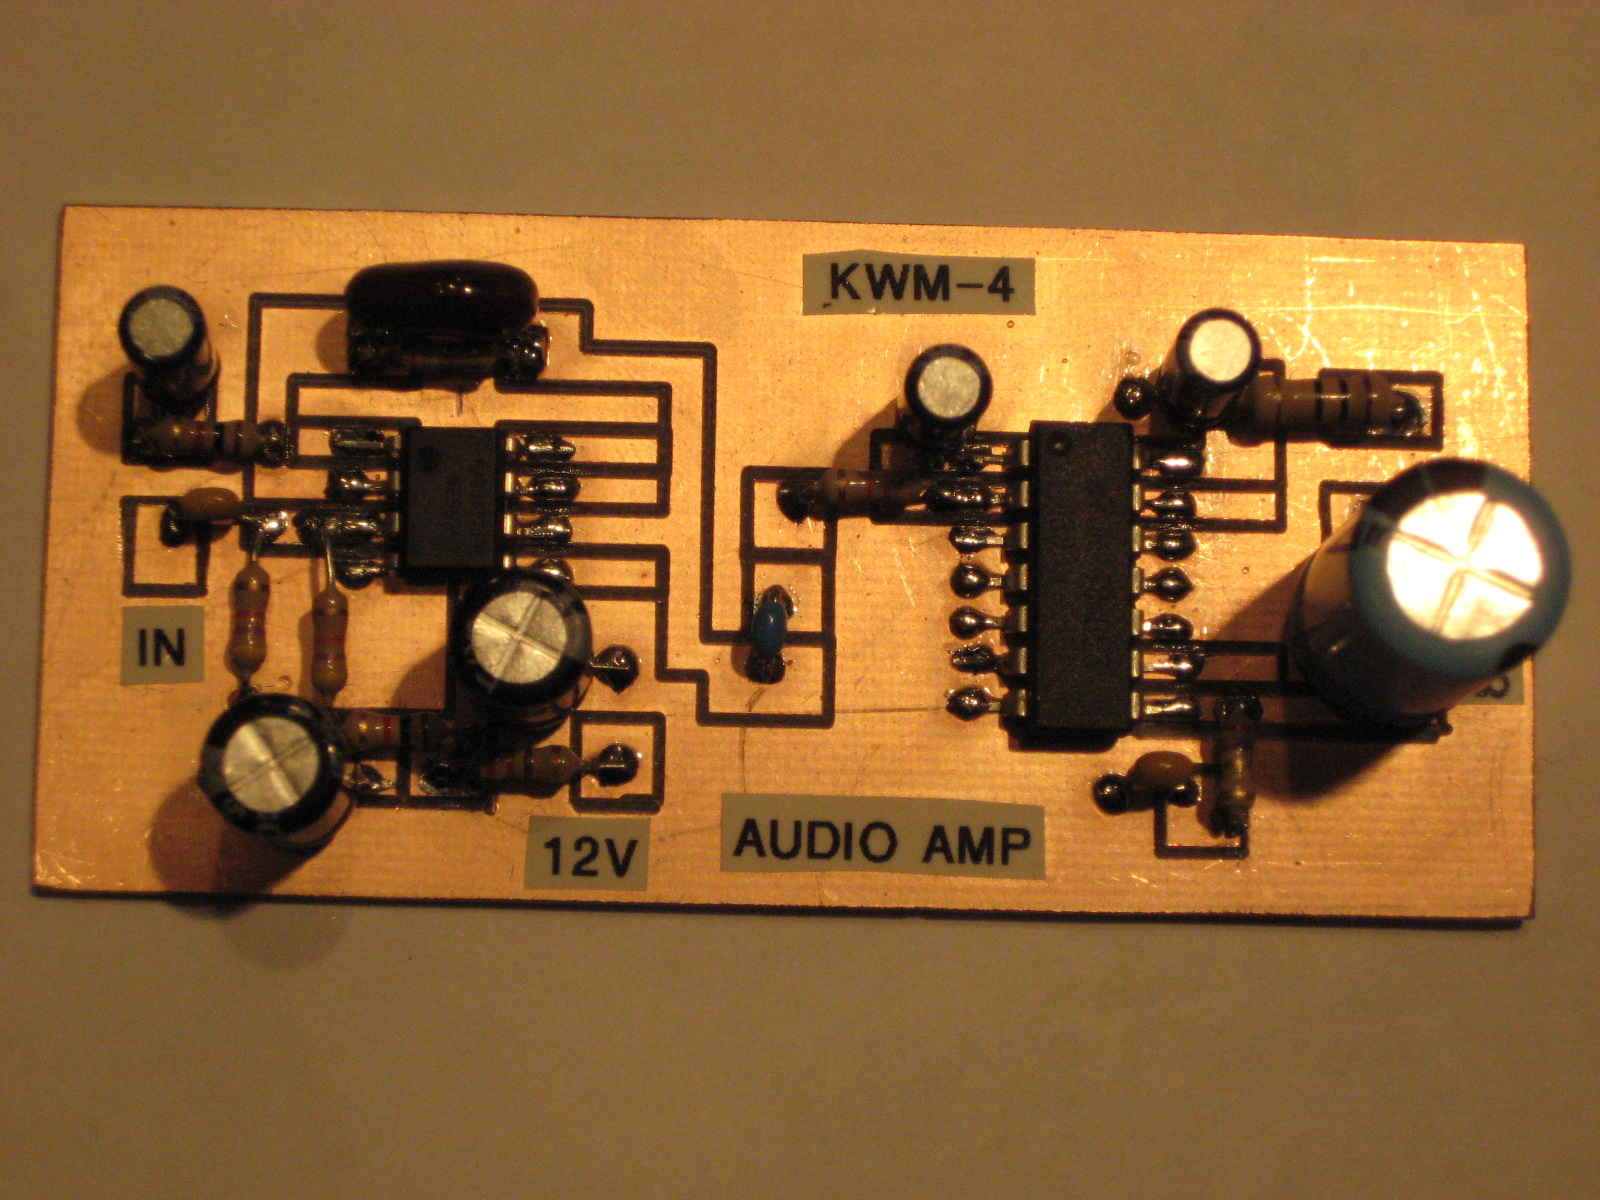 Simpleceiver Plus Very Simple Preamplifiers Using 2n3904 I Got Overcome By Other Commitments On 8 22 And Today Does Not Look Any Better But Still Plan To Build A Version Of The 1st Amp Small Chunk